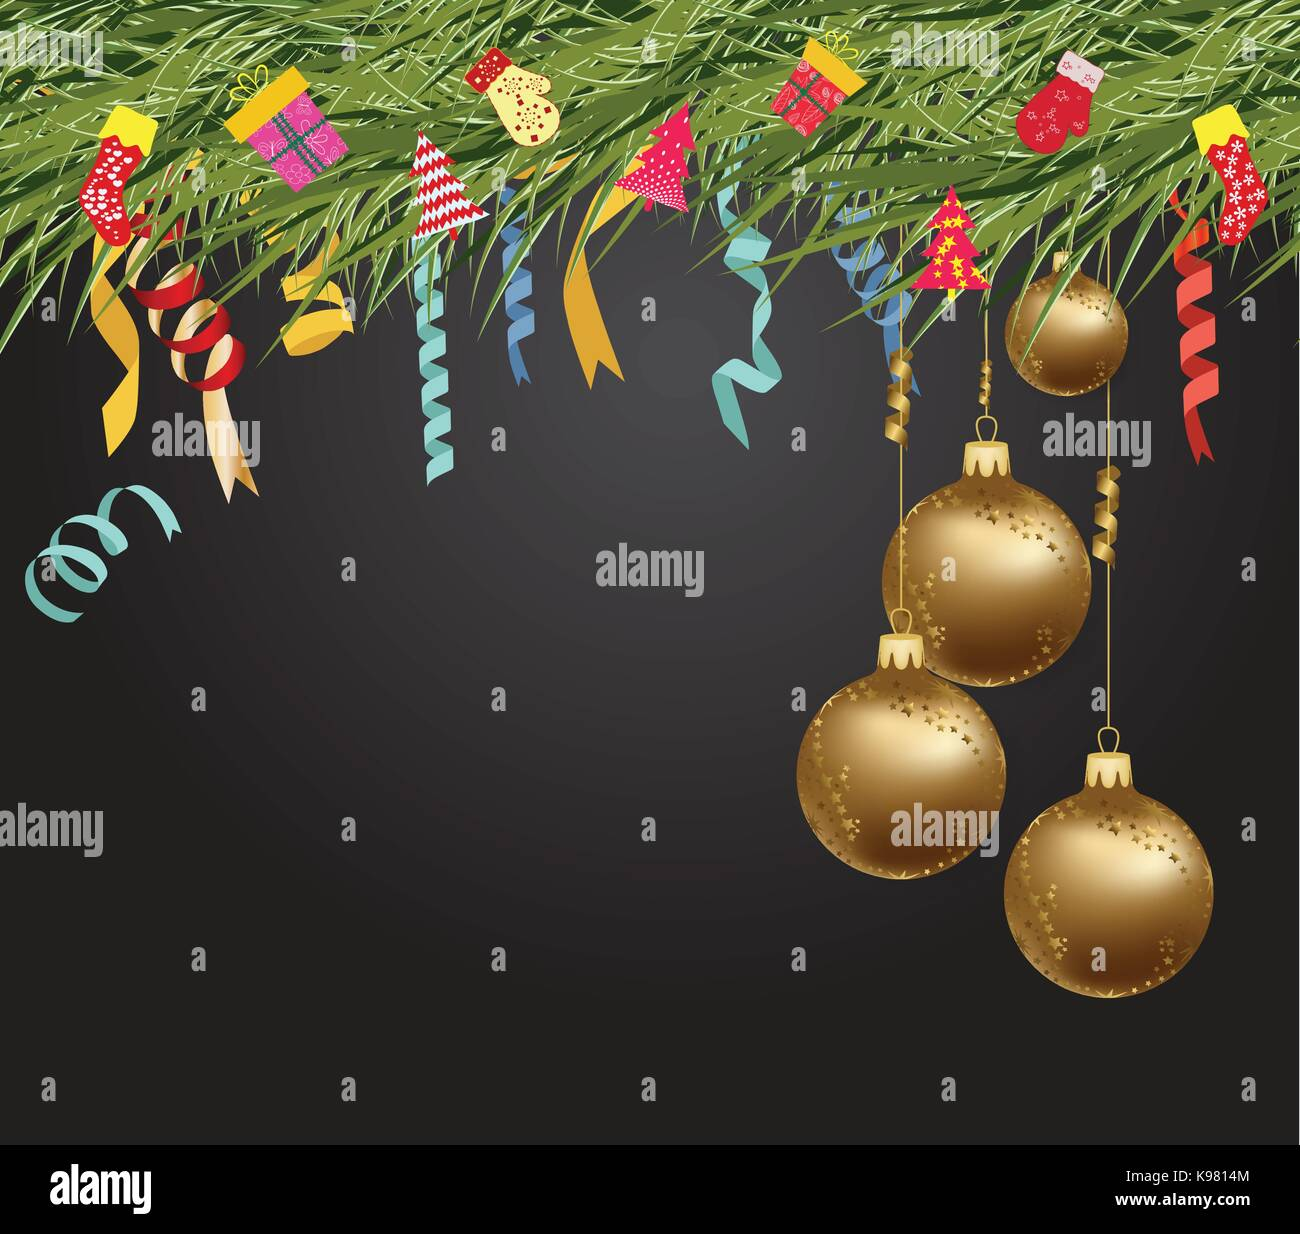 merry christmas and happy new year 2018 wallpaper balls gold